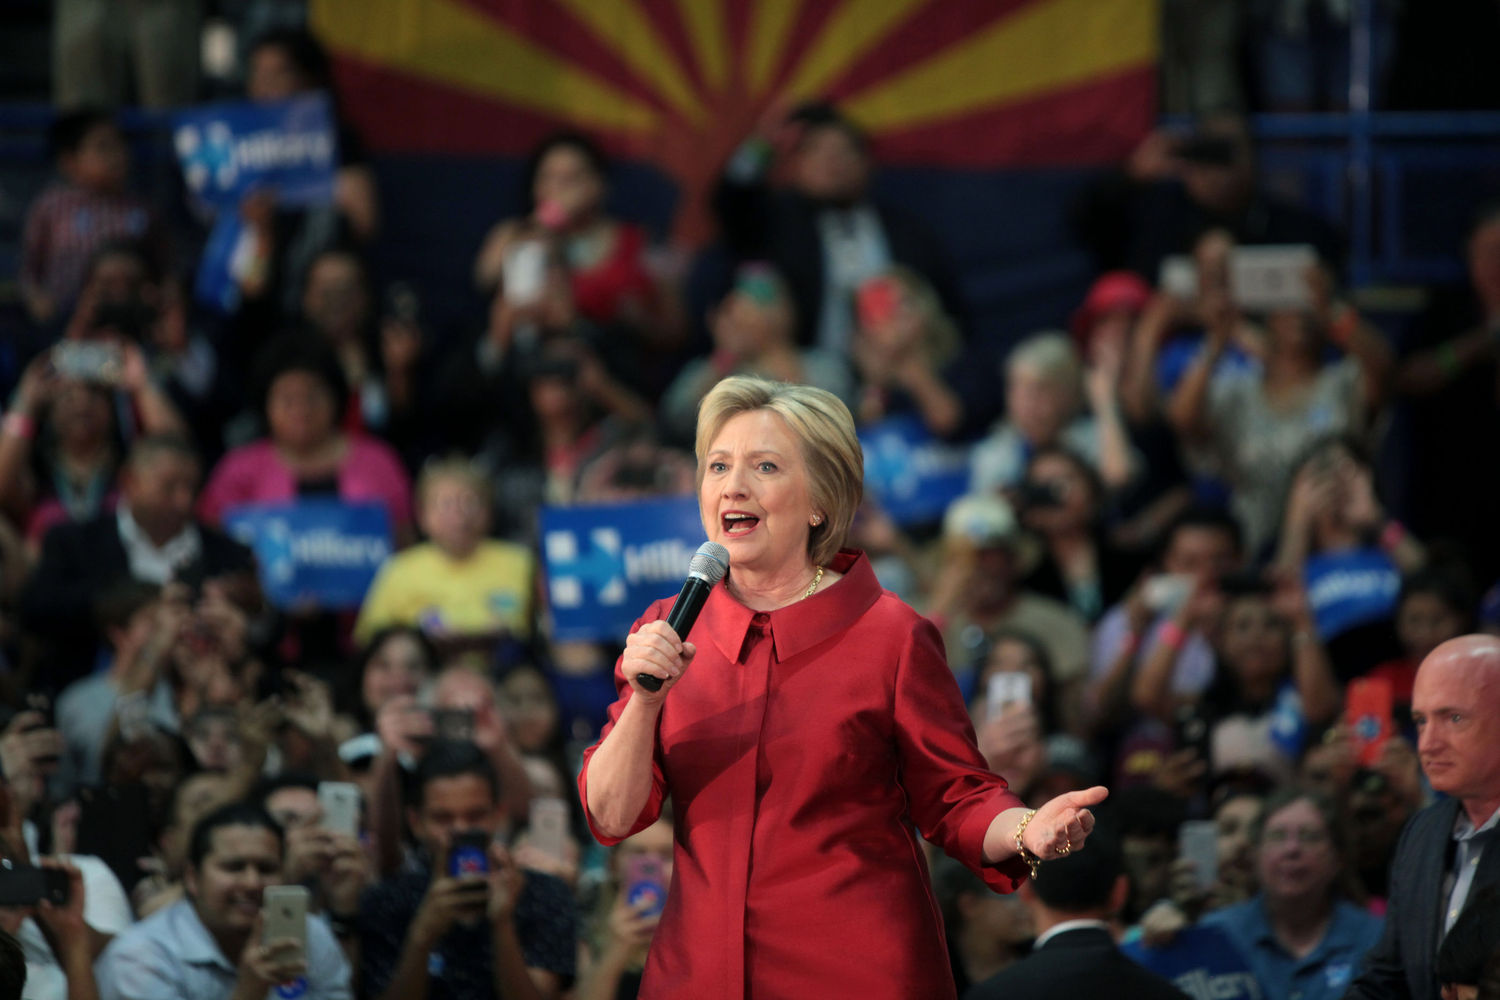 Democratic nominee Hillary Clinton at a March 21, 2016 campaign rally in Phoenix, Arizona. Photo: Gage Skidmore